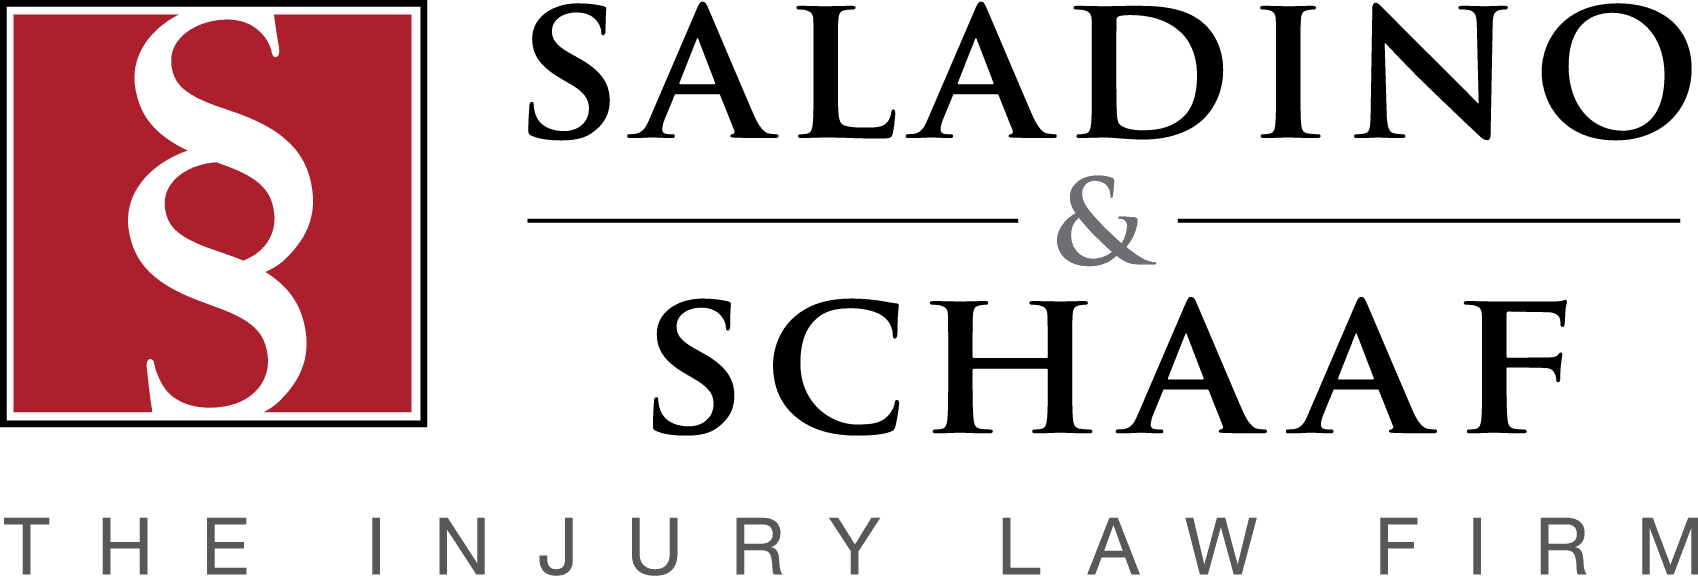 Saladino & Schaaf - The Injury Law Firm